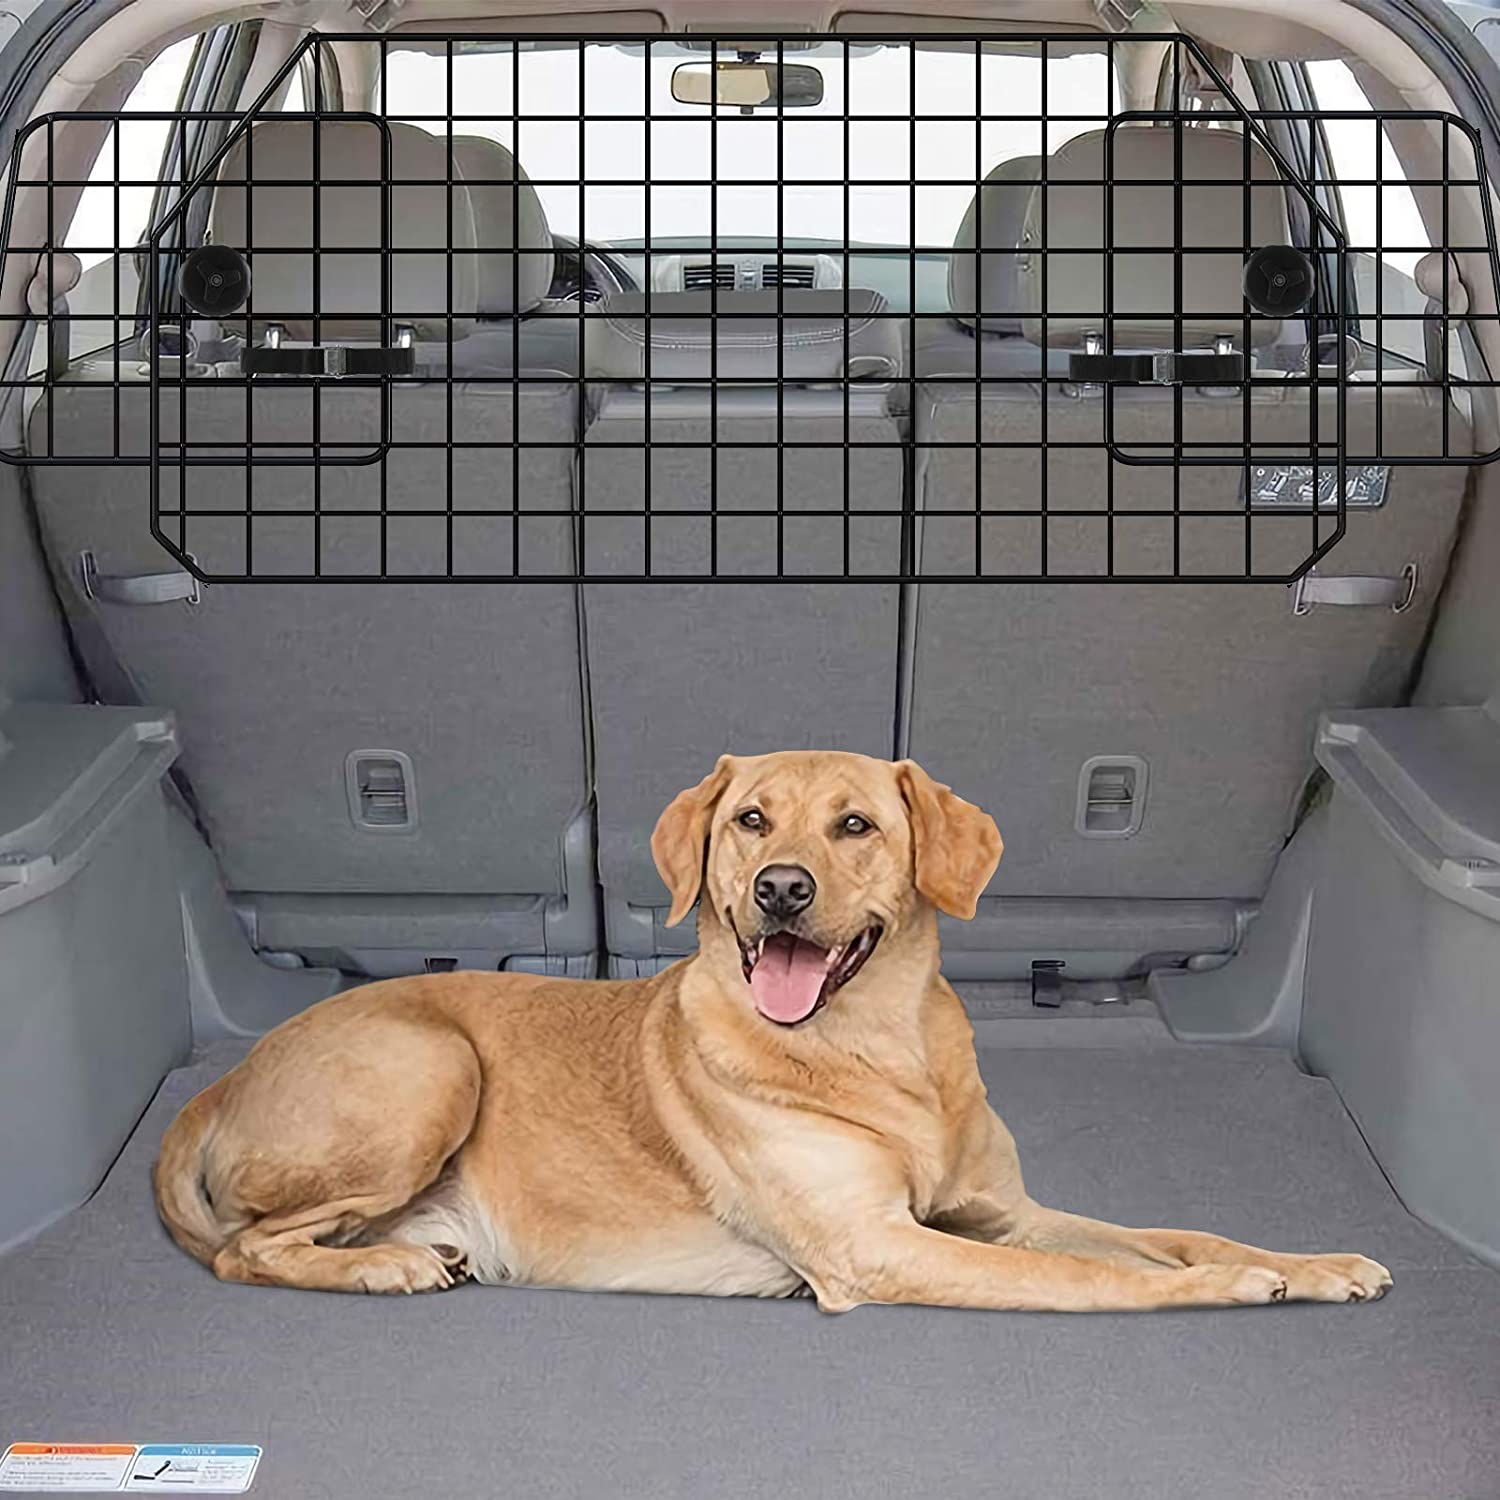 Gtongoko Adjustable Dog Car Barriers for SUV, Vehicles, Cars, Heavy Wire Mesh Universal Vehicle Separator, Pet Compartment Door in Cargo Area of Vehicle Trunk, Black : Pet Supplies